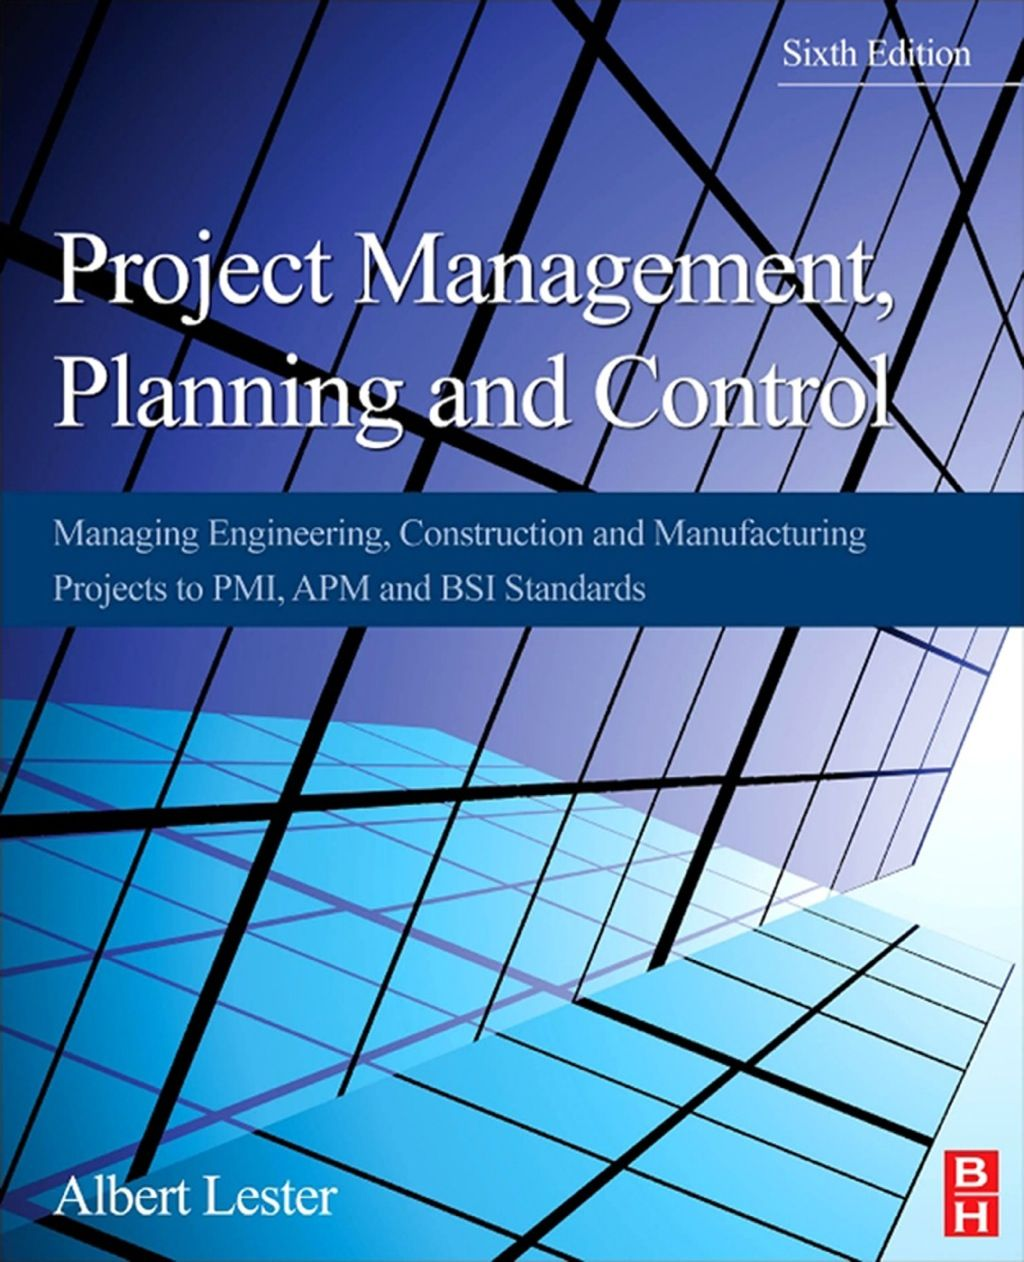 Project Management Planning and Control: Managing